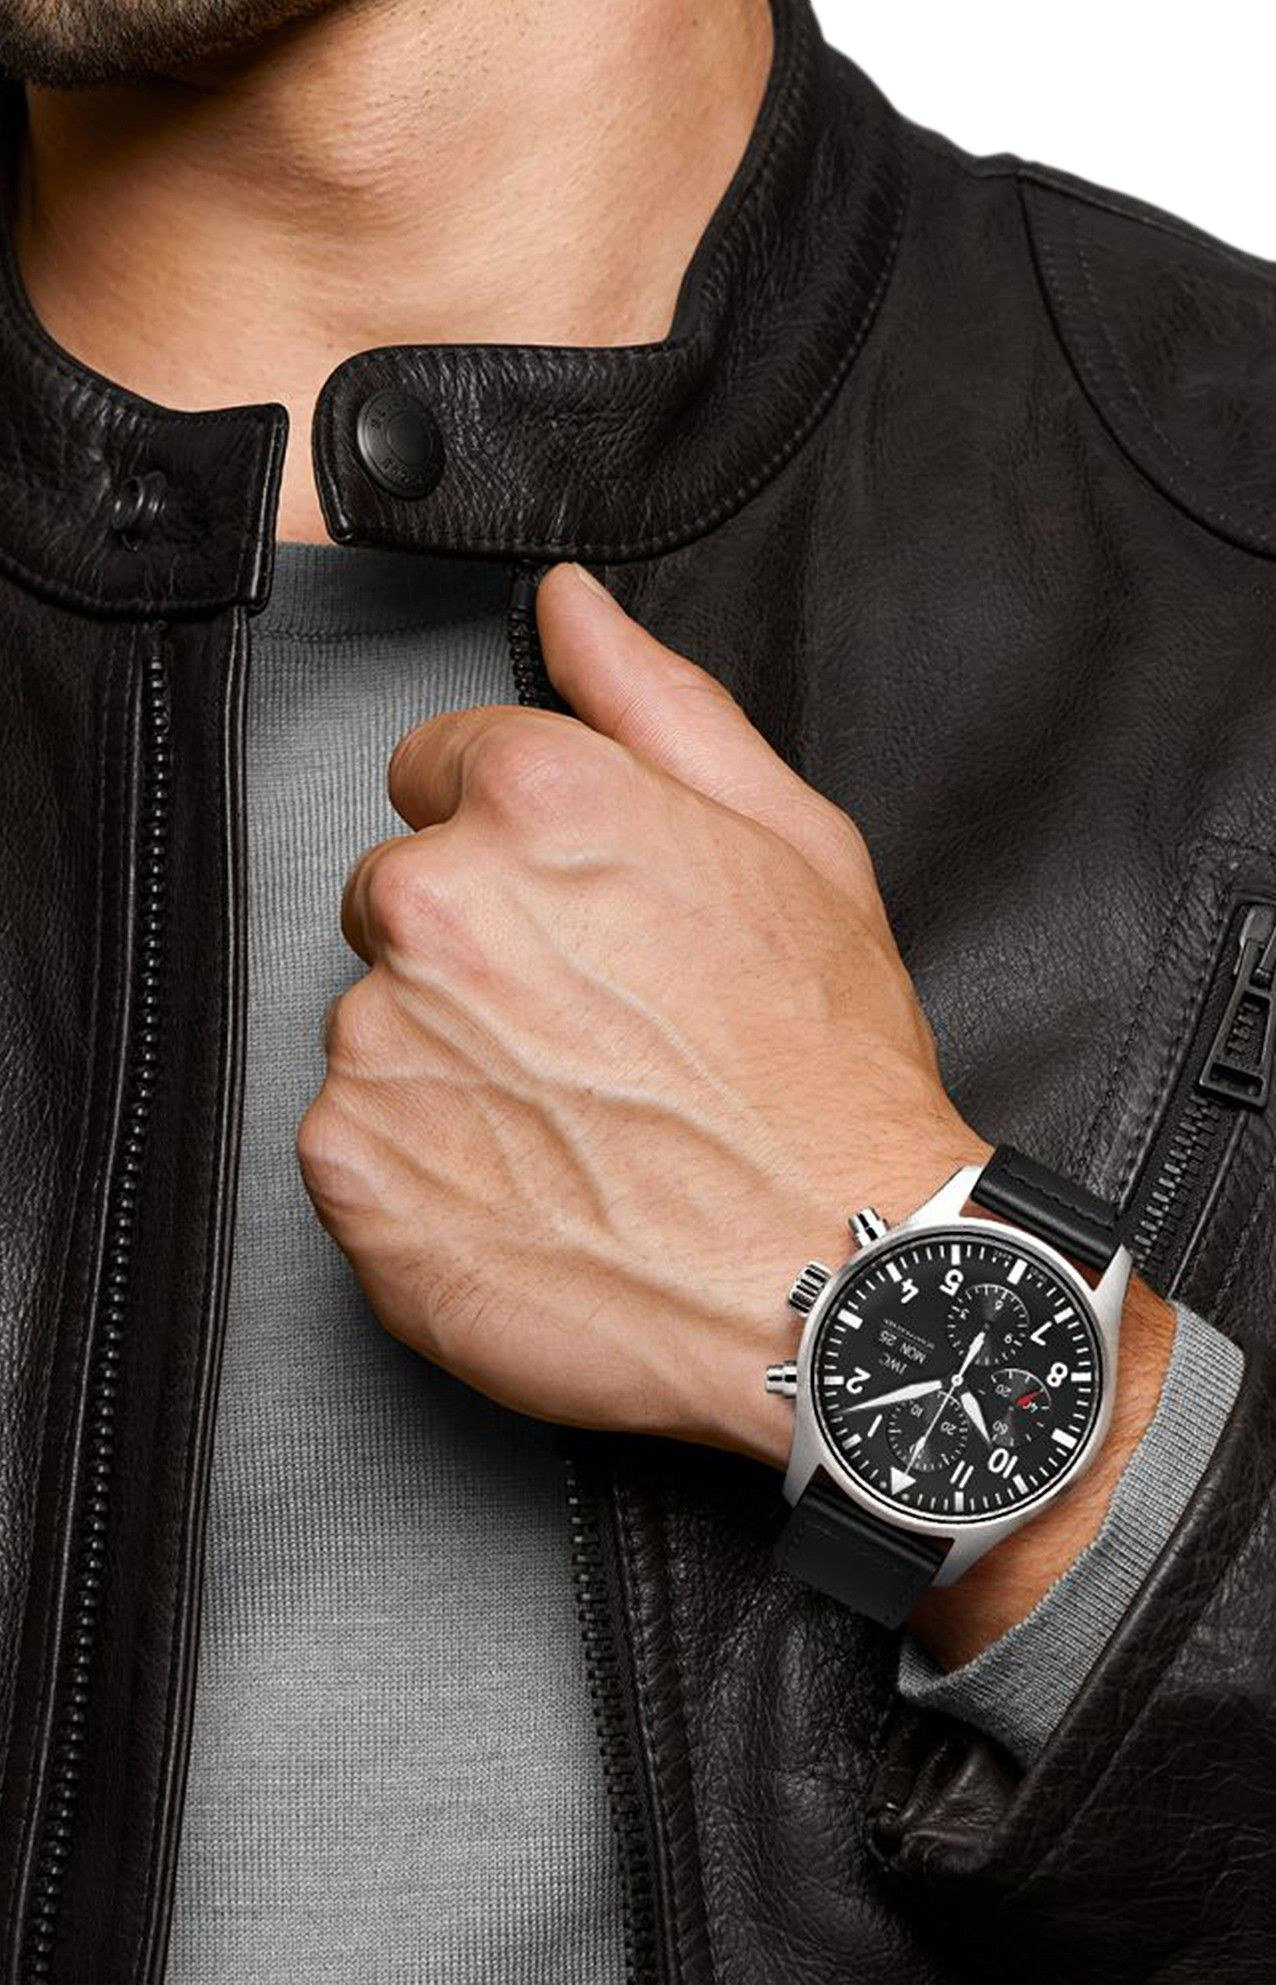 PILOT'S WATCH CHRONOGRAPH - IW377709